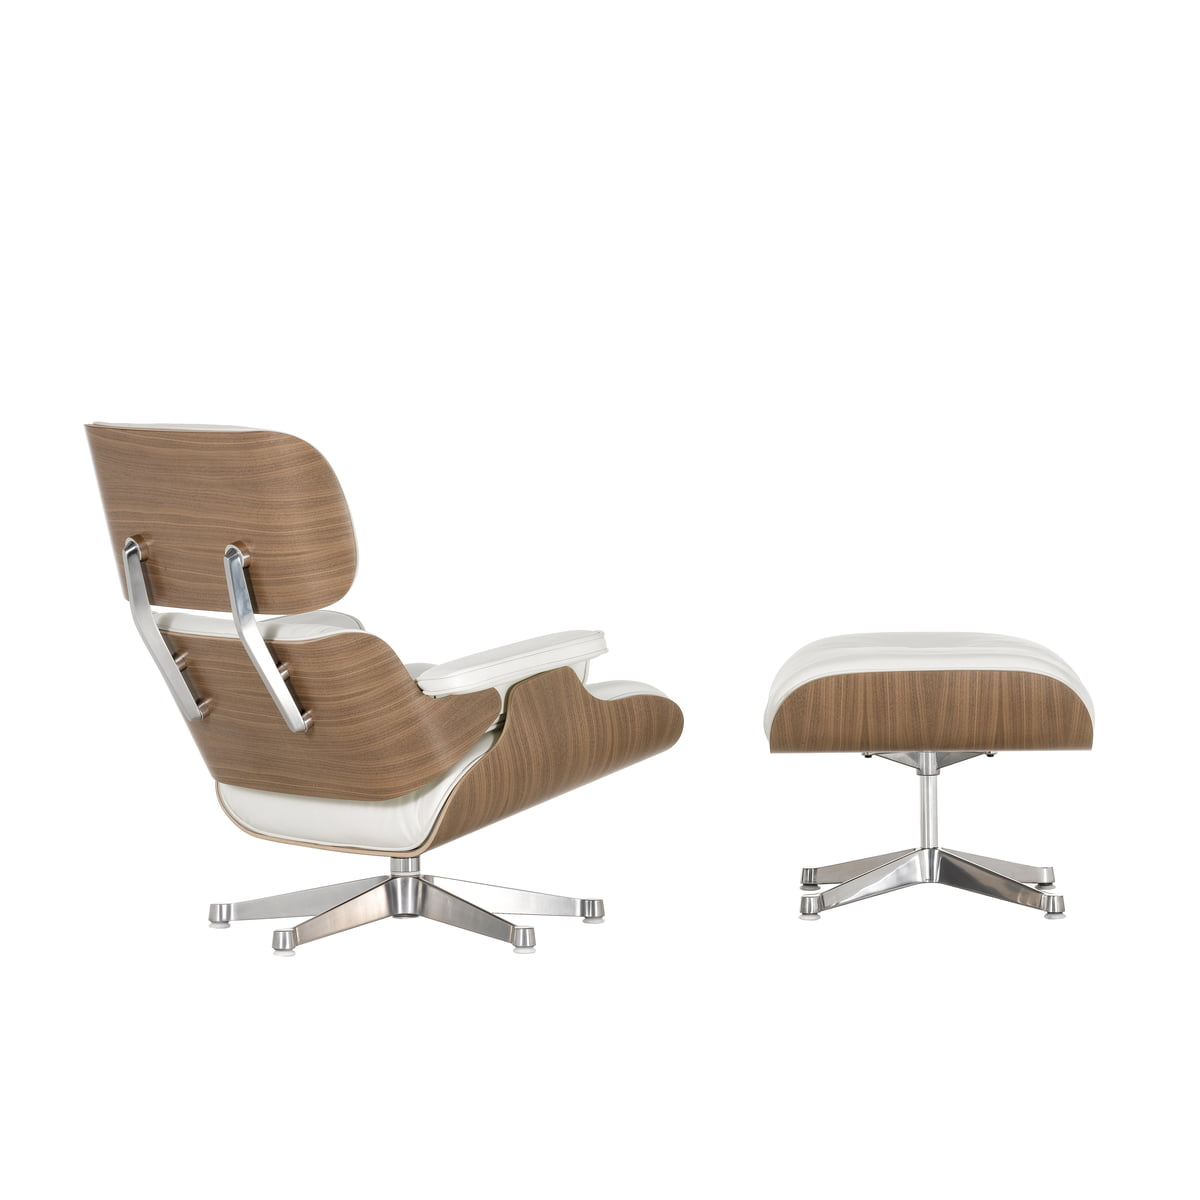 Vitra Eames Lounge Chair U0026 Ottoman   Walnut White, Polished